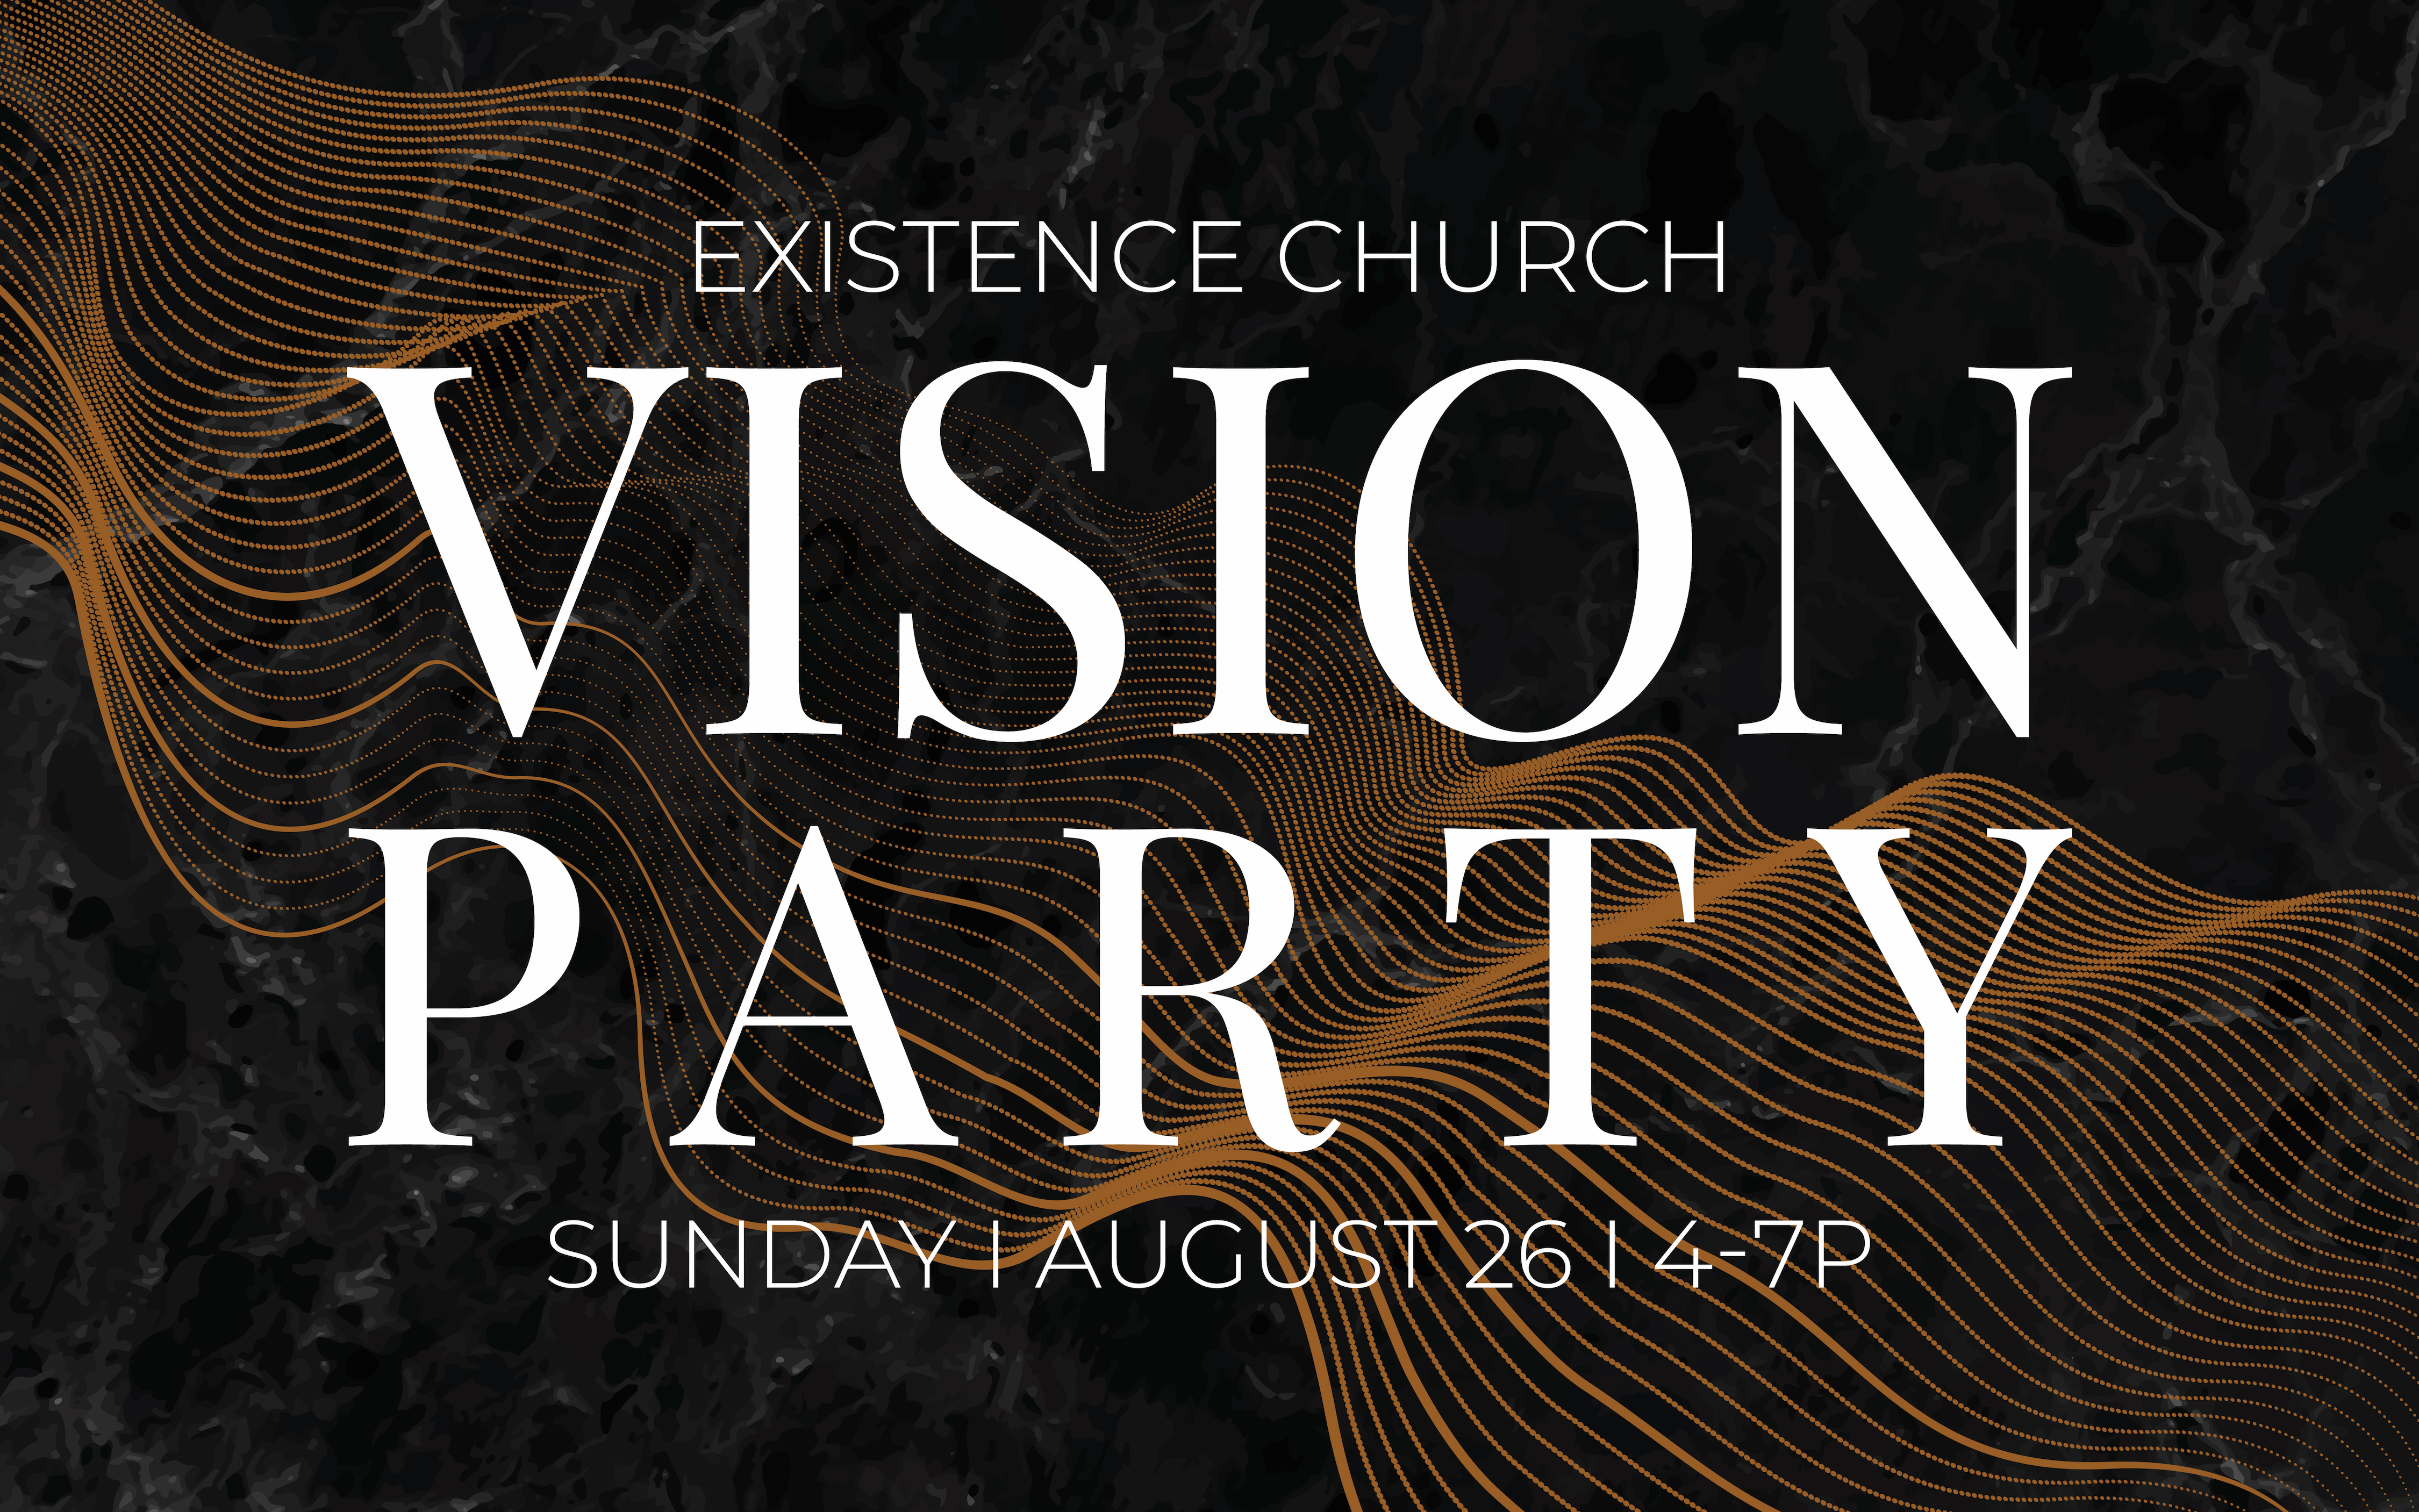 Vision party final